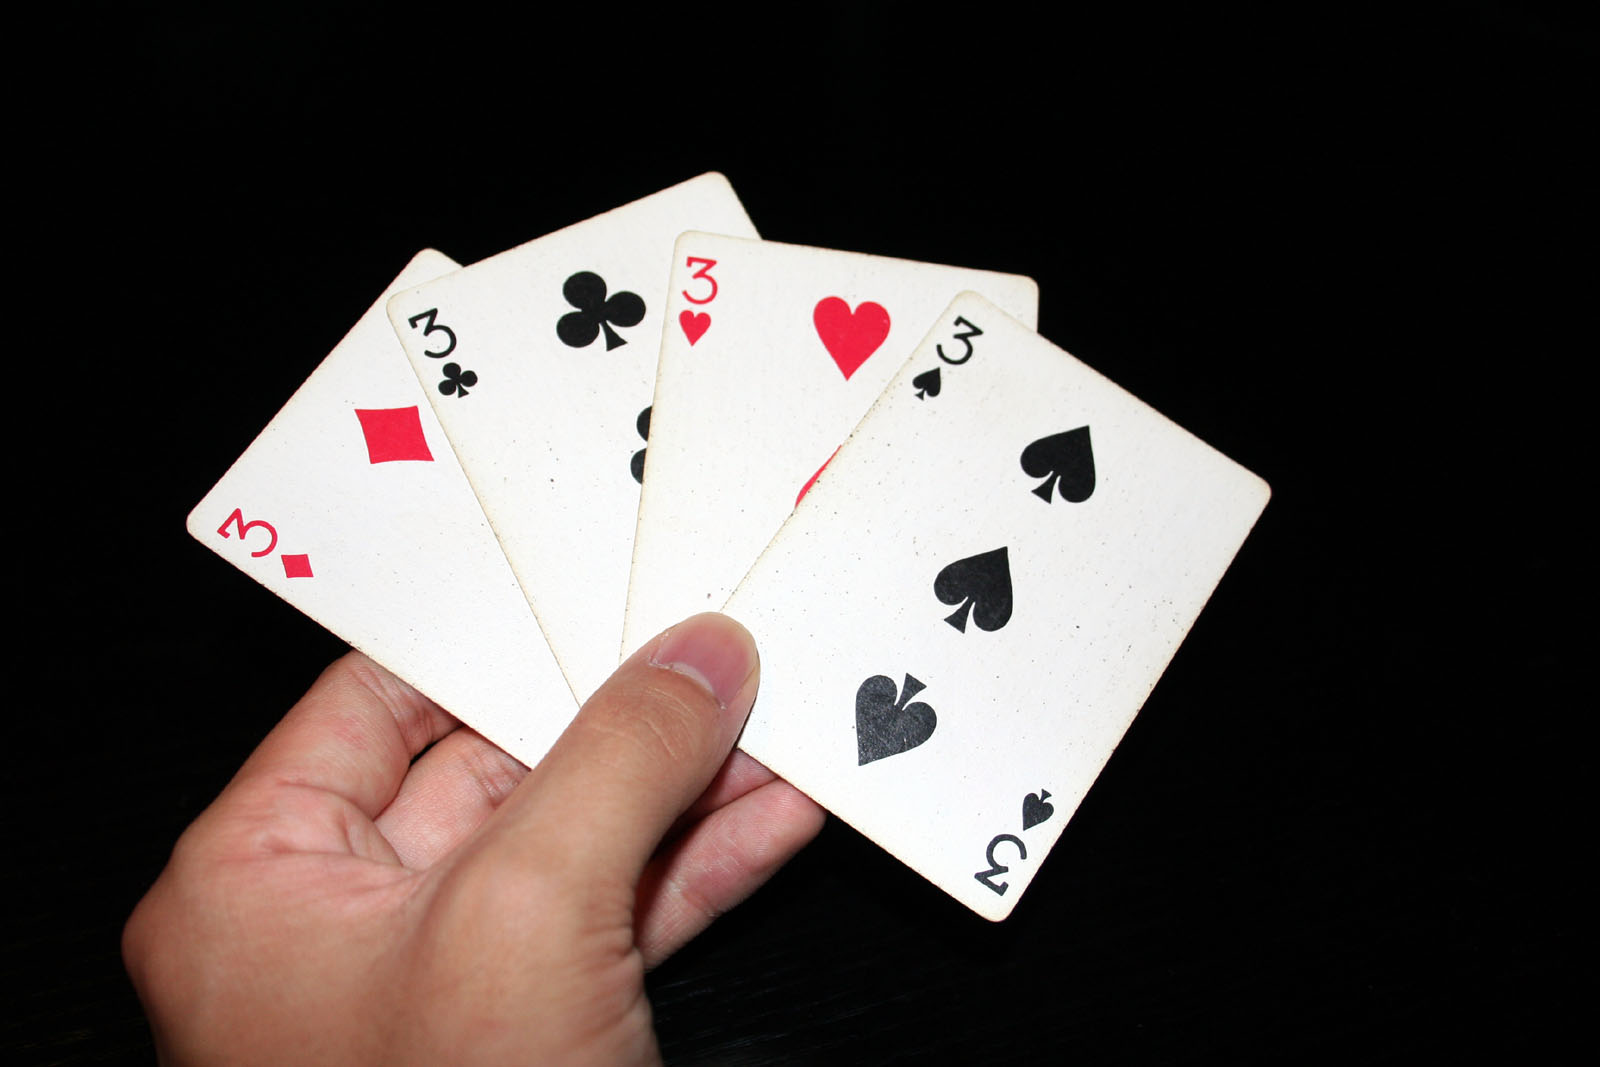 How to play Indian Rummy